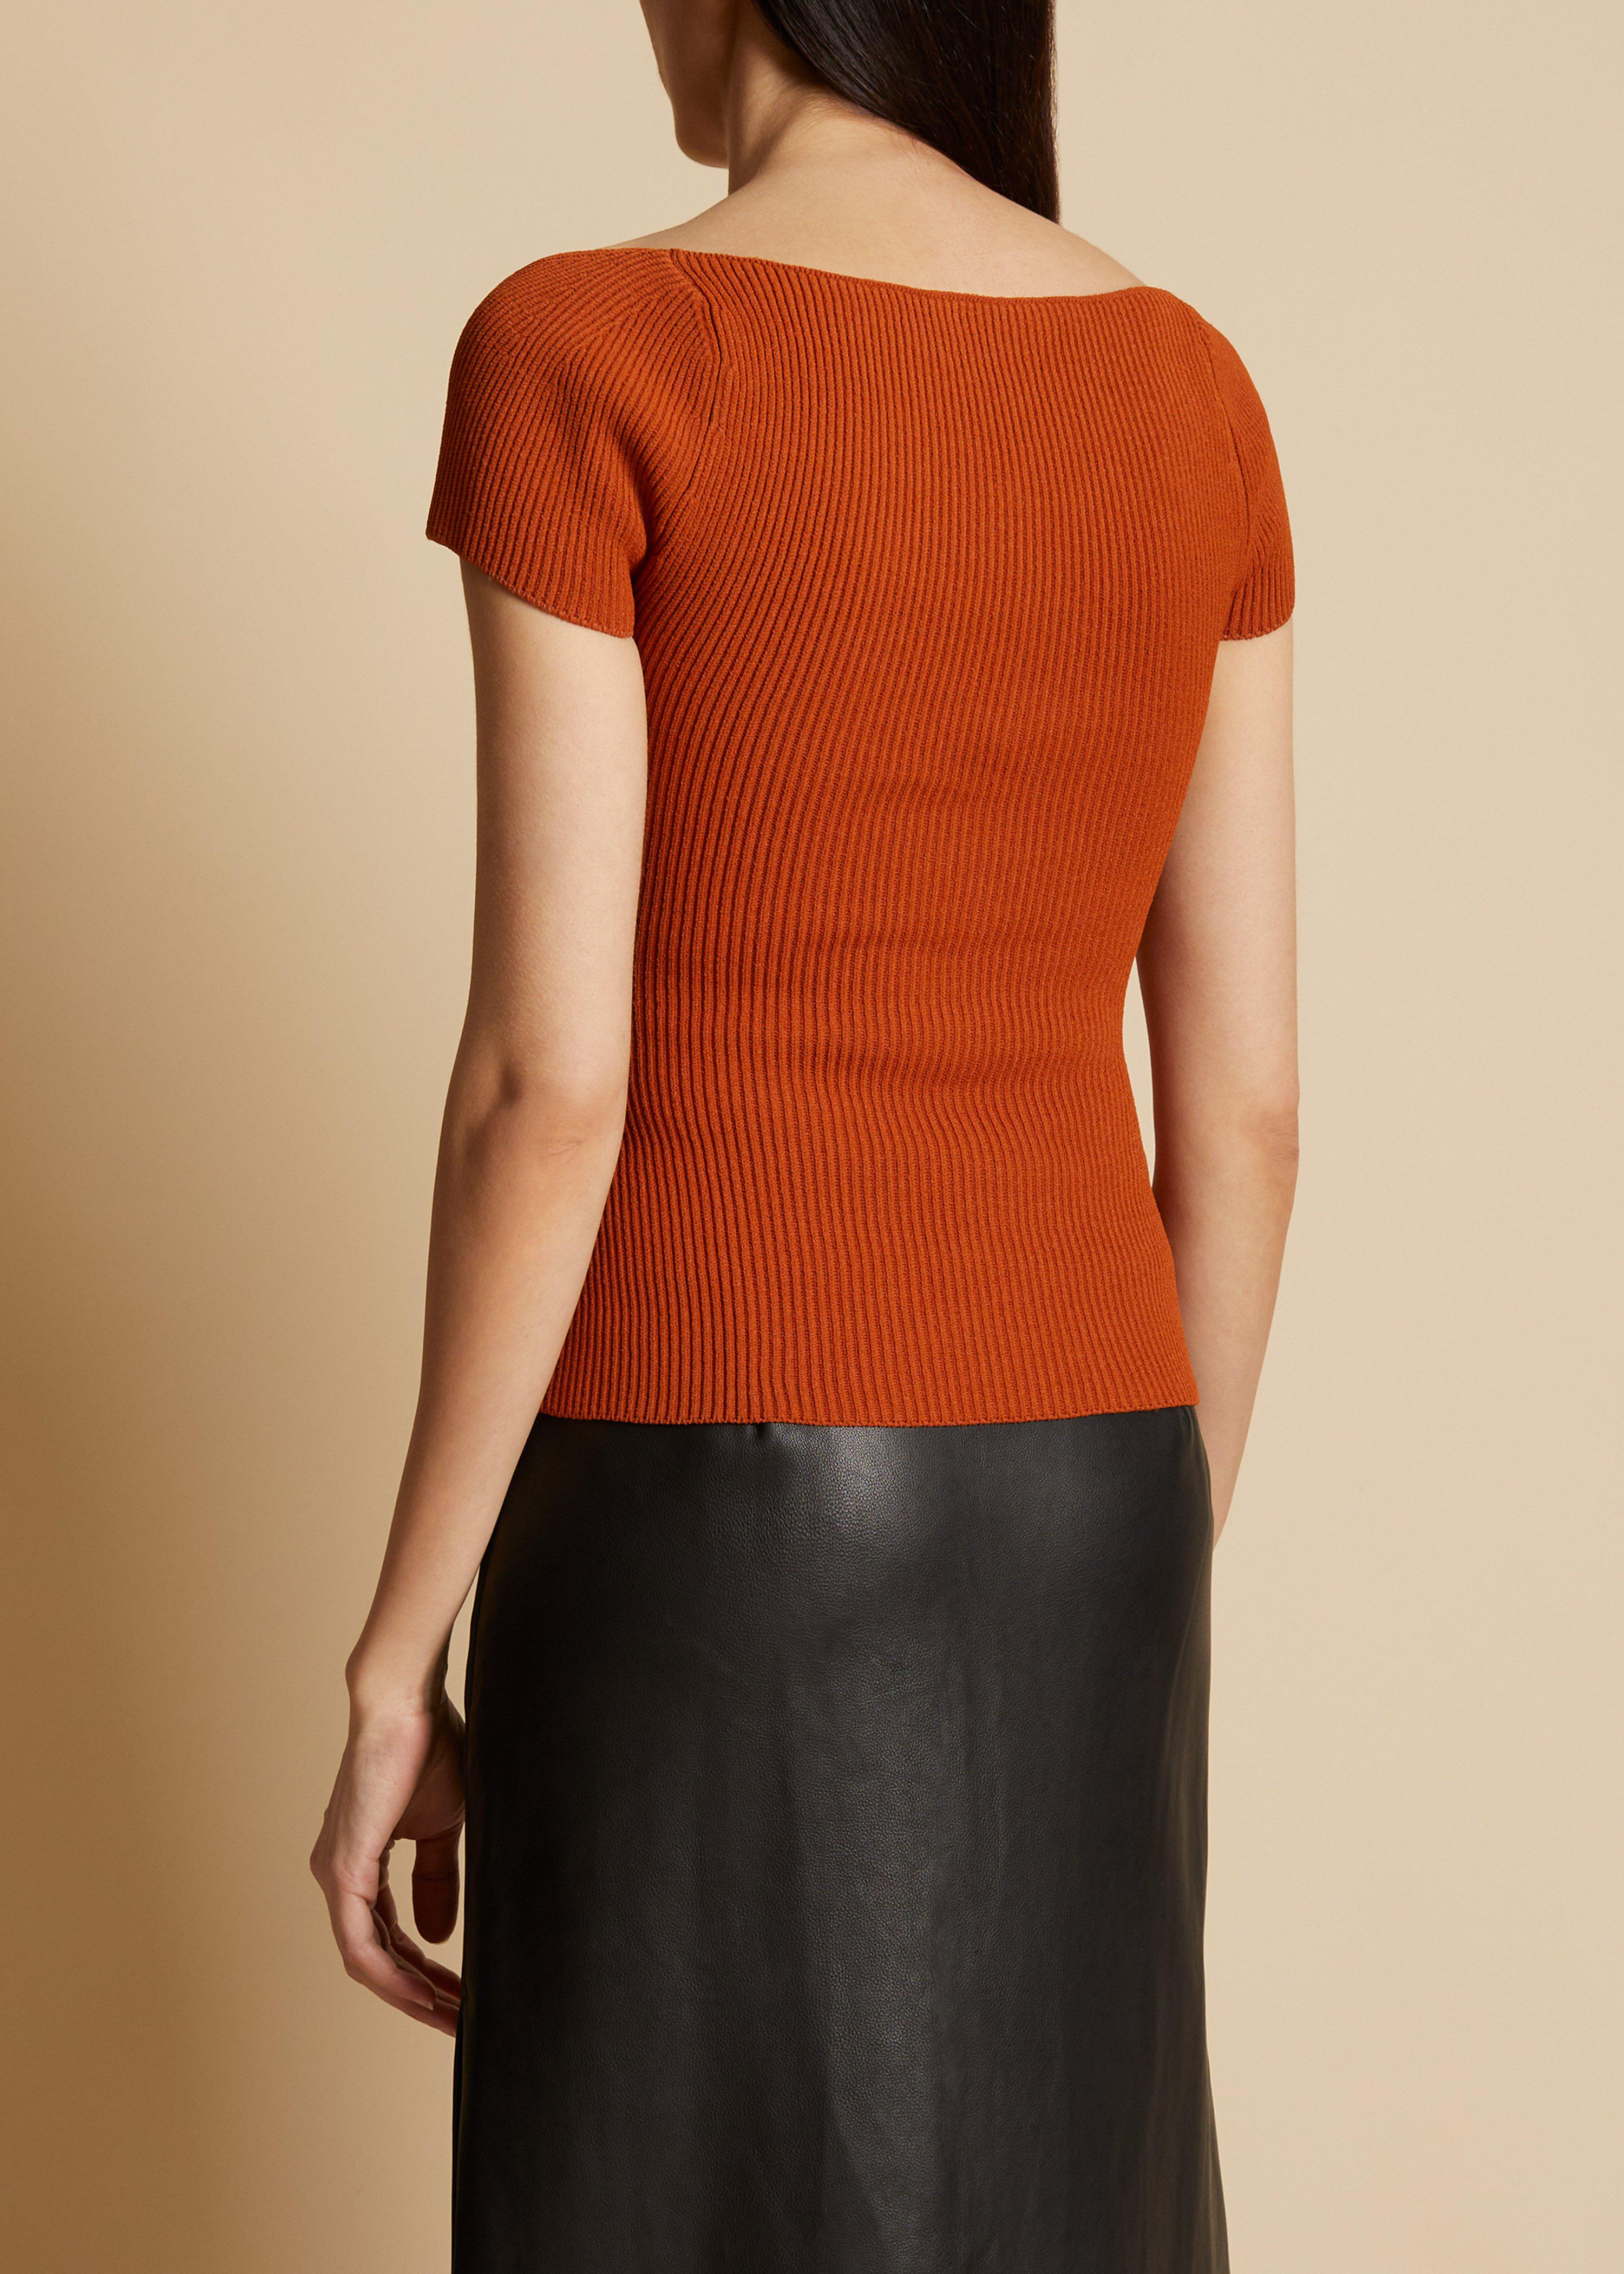 The Ista Top in Sienna 2